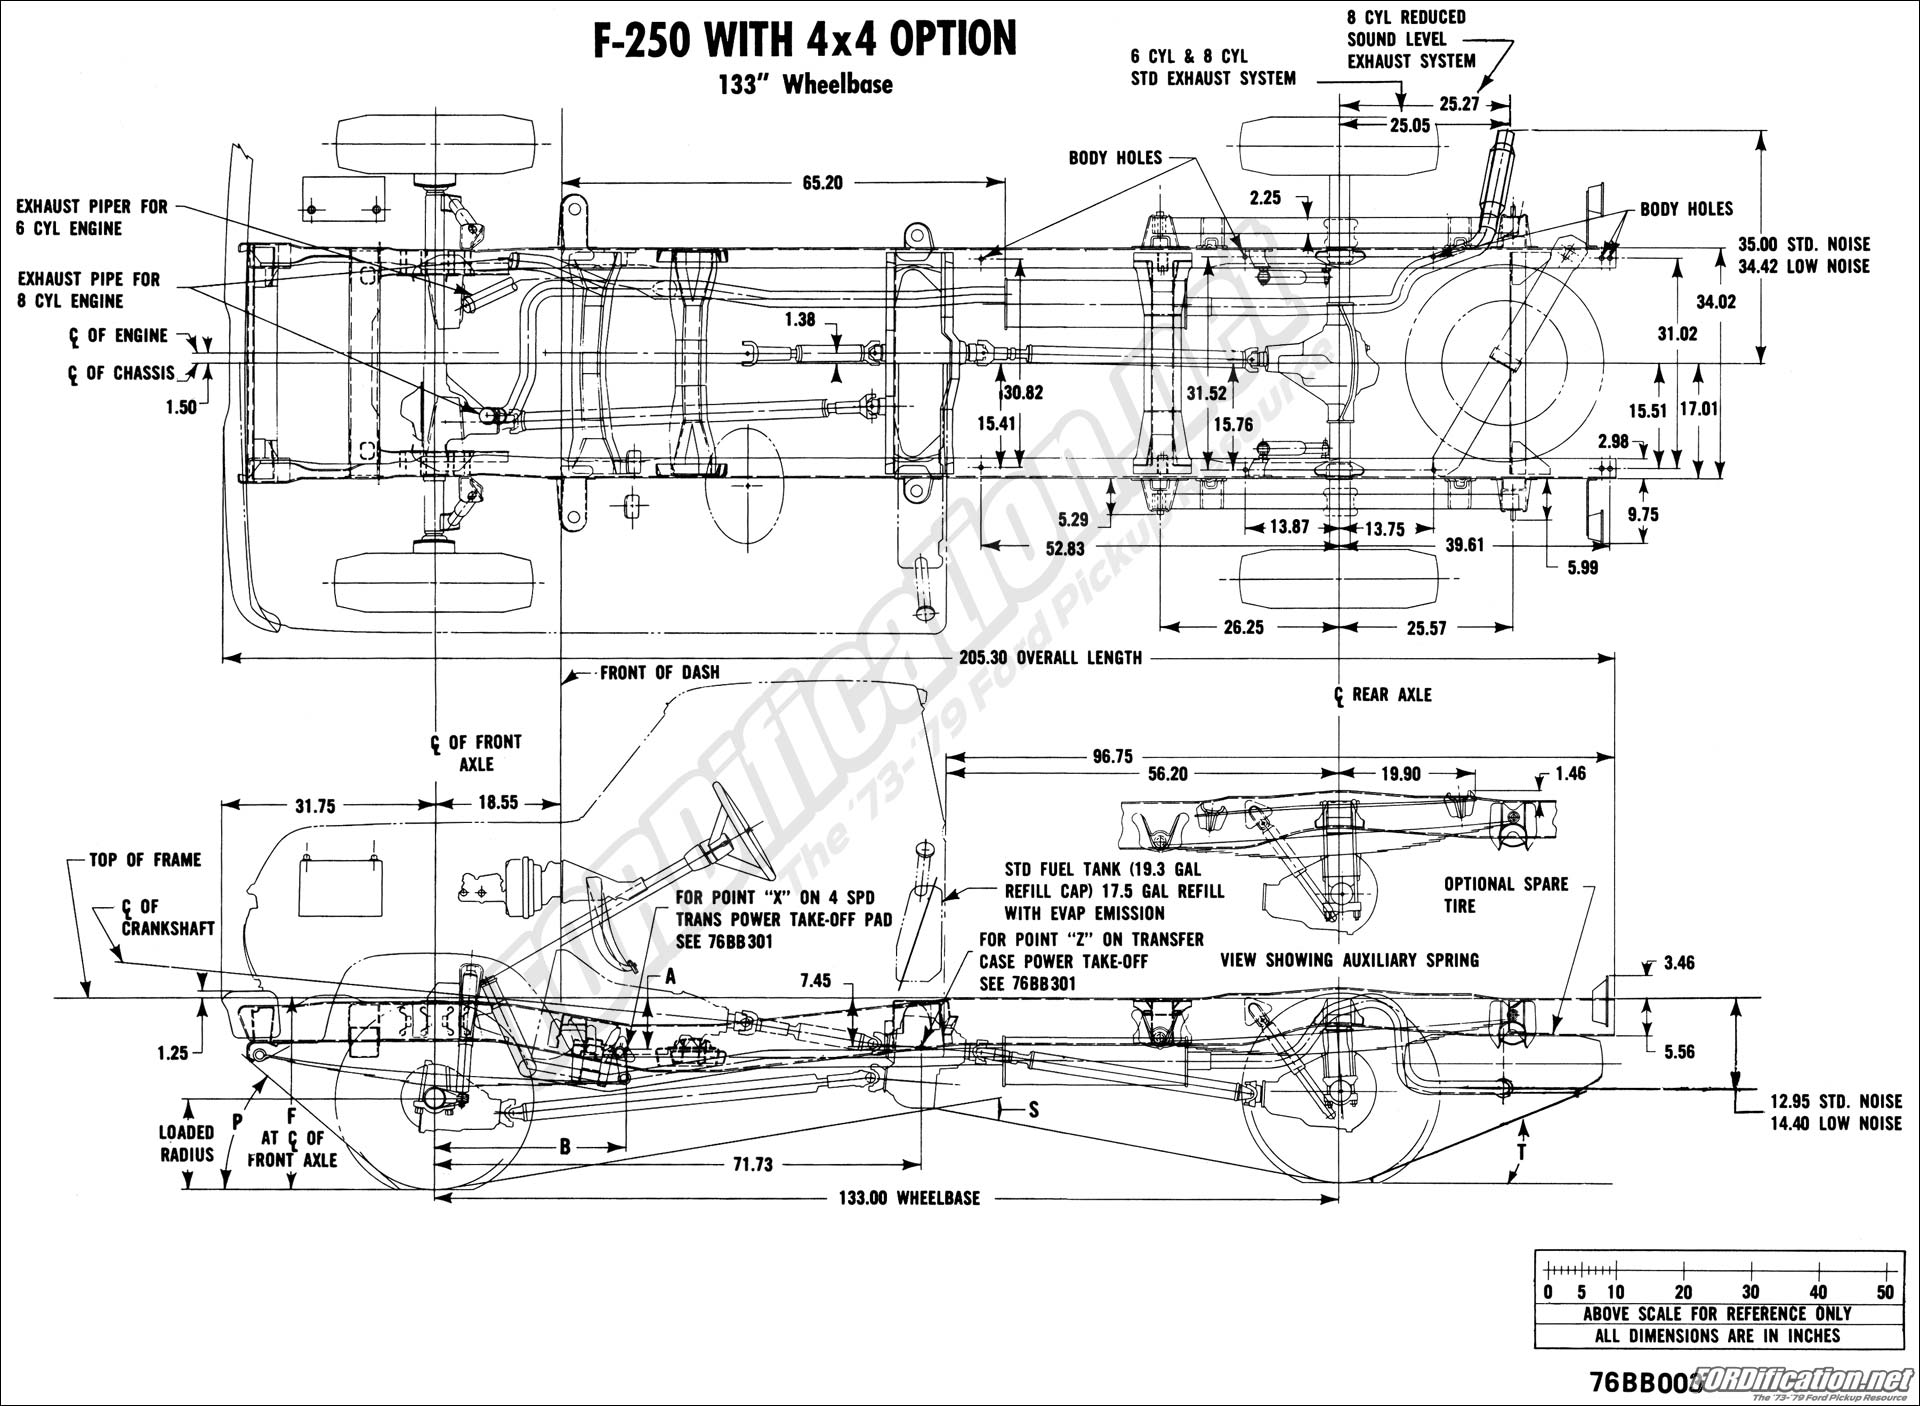 Bodybuilder76 on 2005 ford f 150 front axle diagram